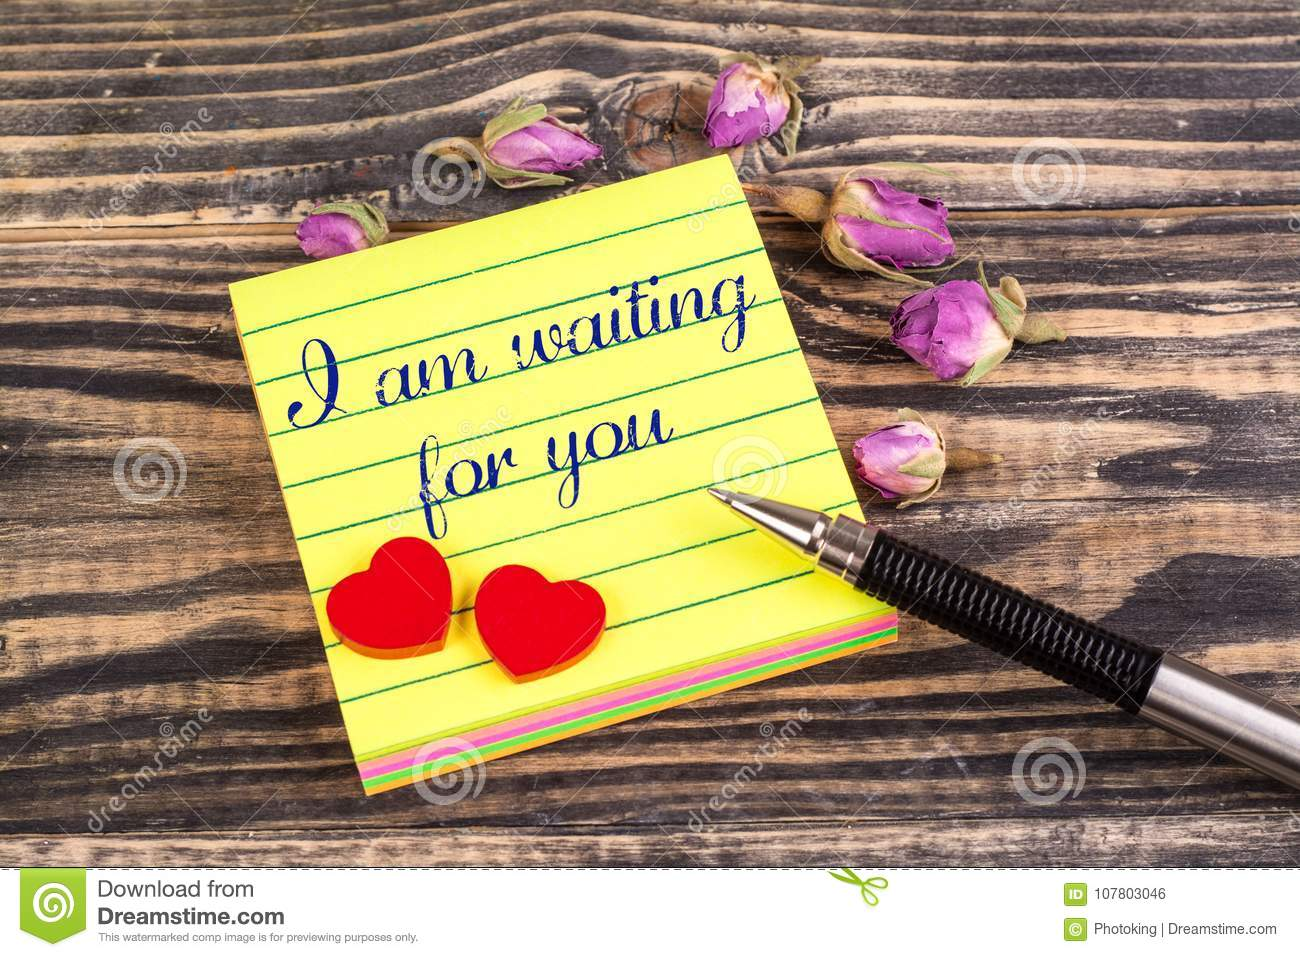 I Am Waiting For You Note Stock Photo Image Of Crafted 107803046